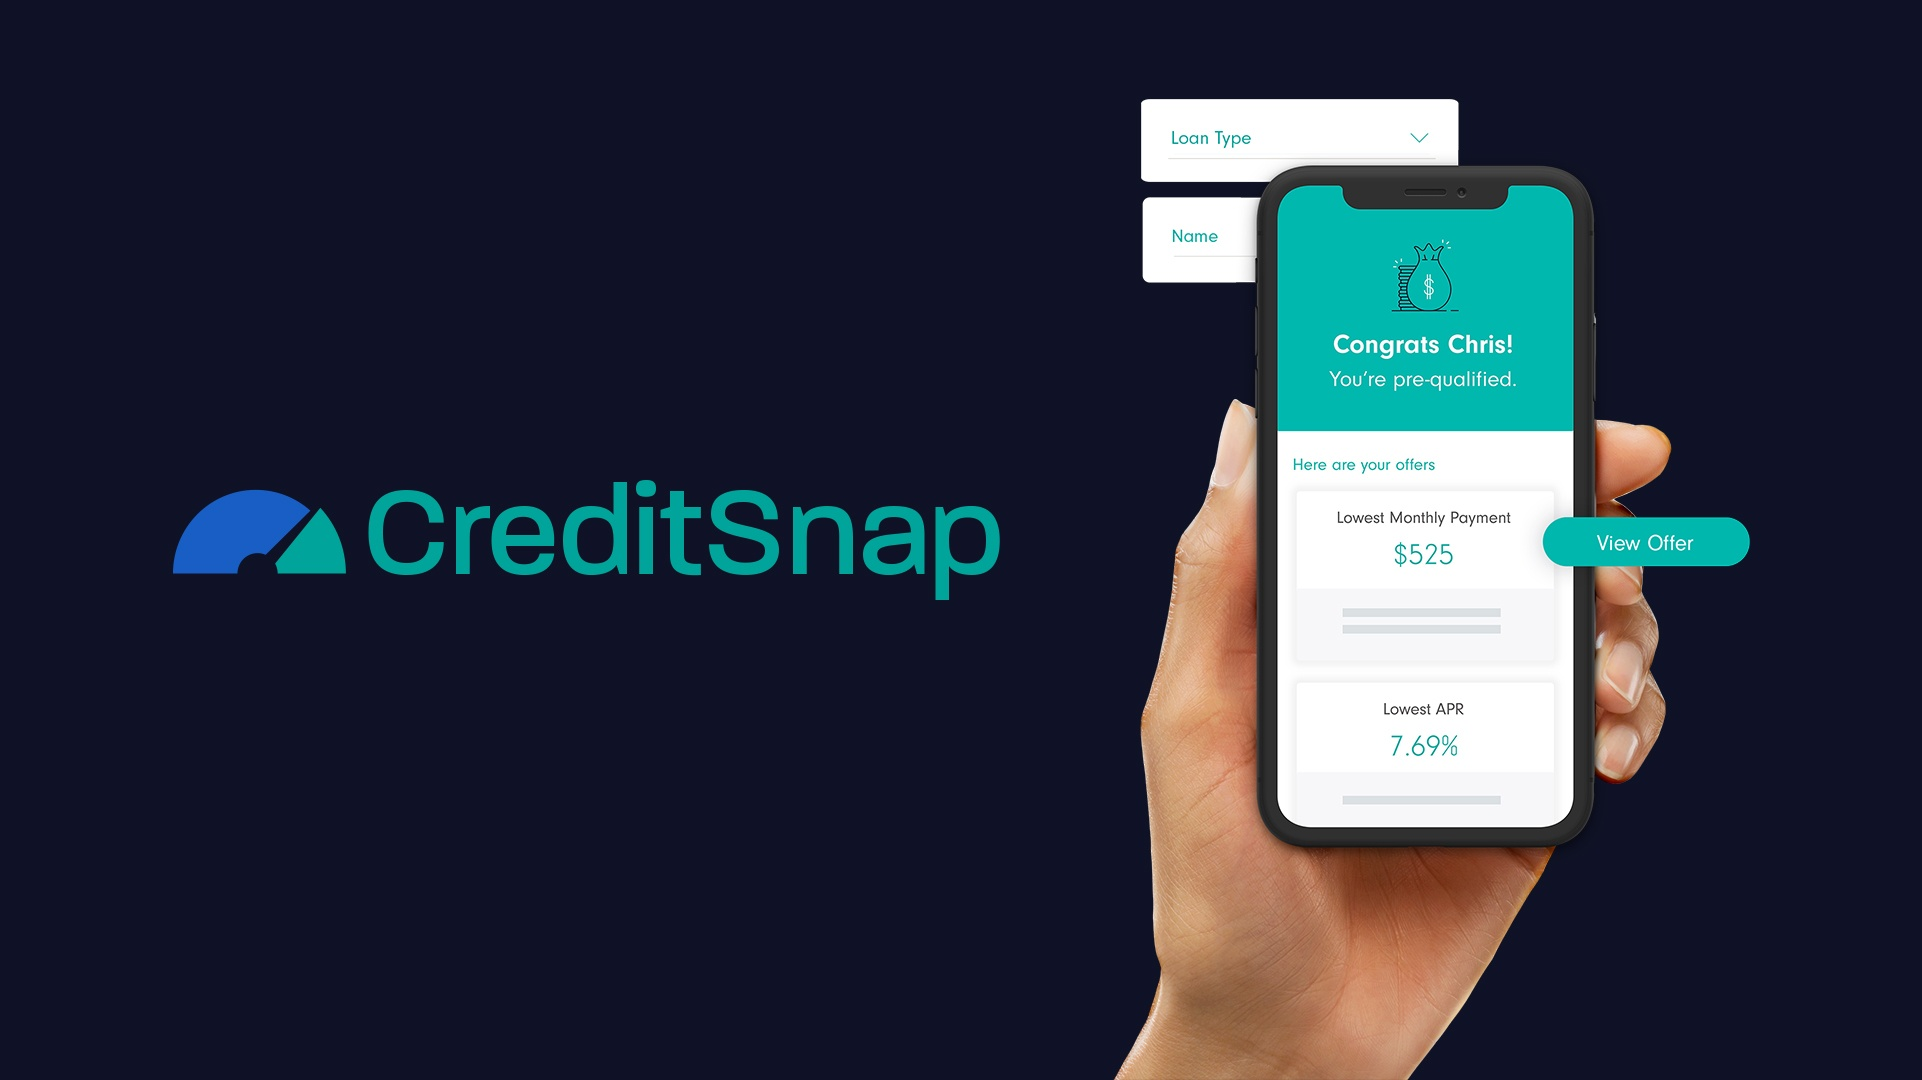 New CreditSnap logo and hand holding phone